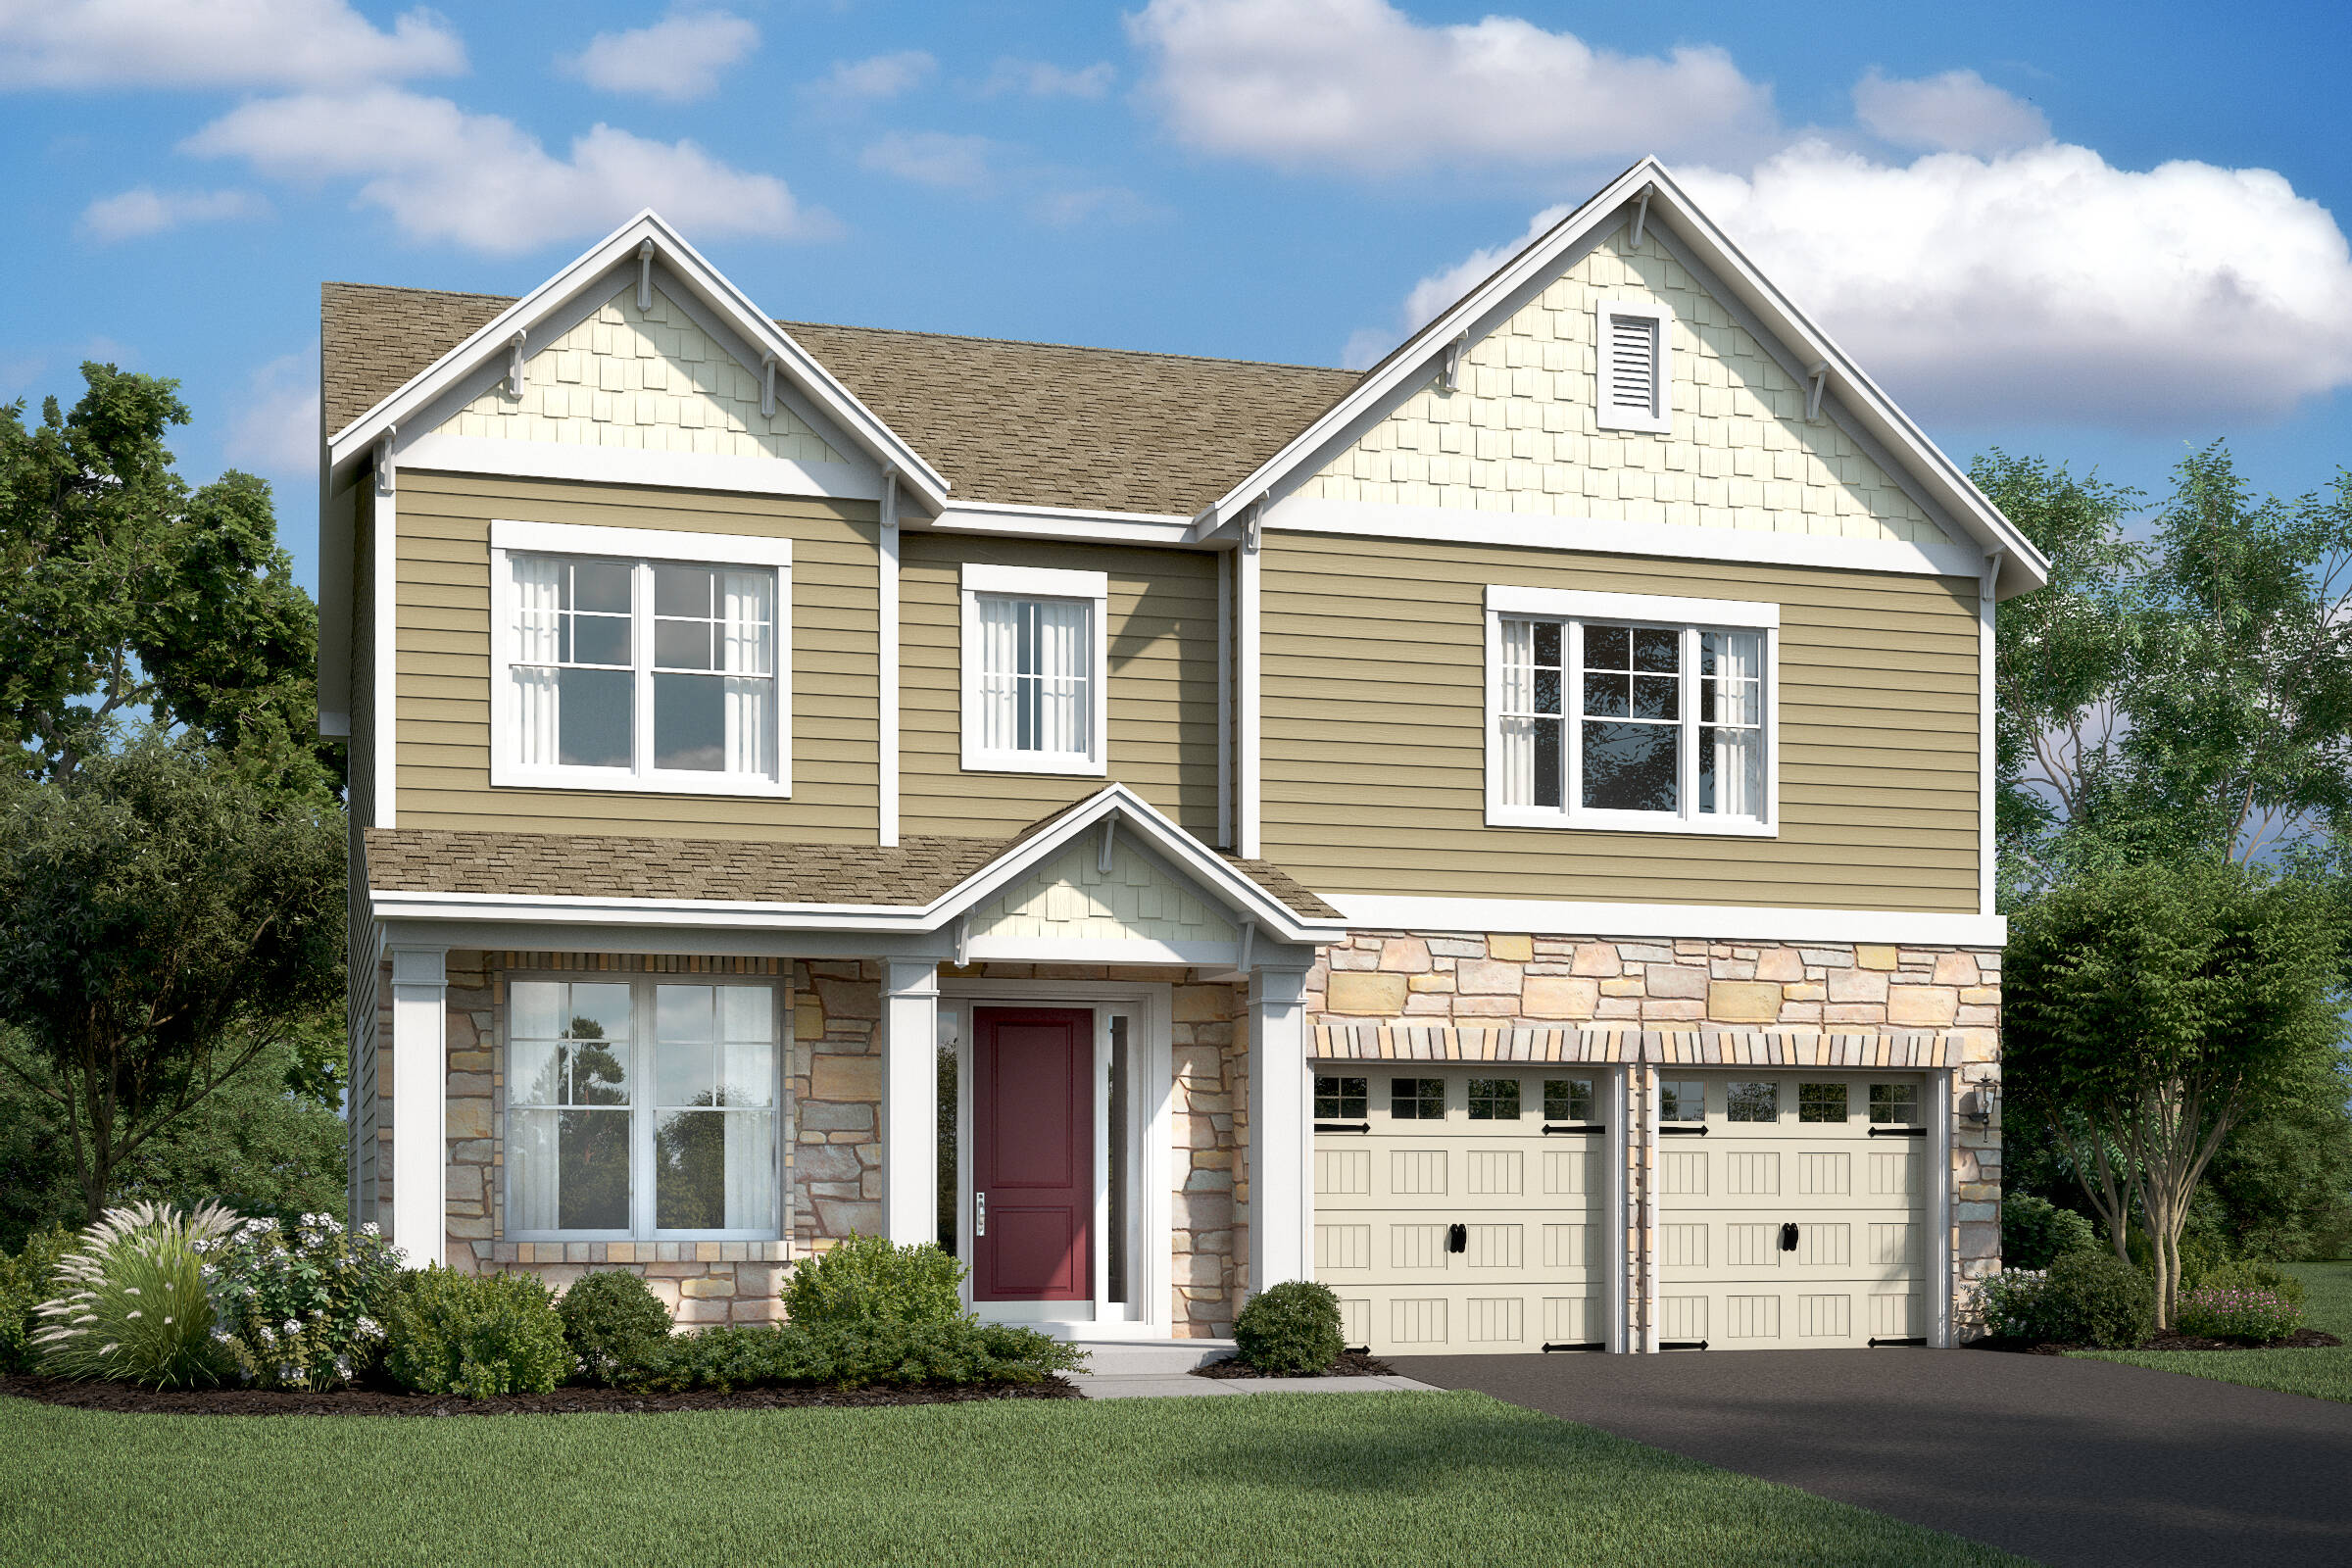 wedgewood-et-new-homes-at-eden-terrace-in-maryland